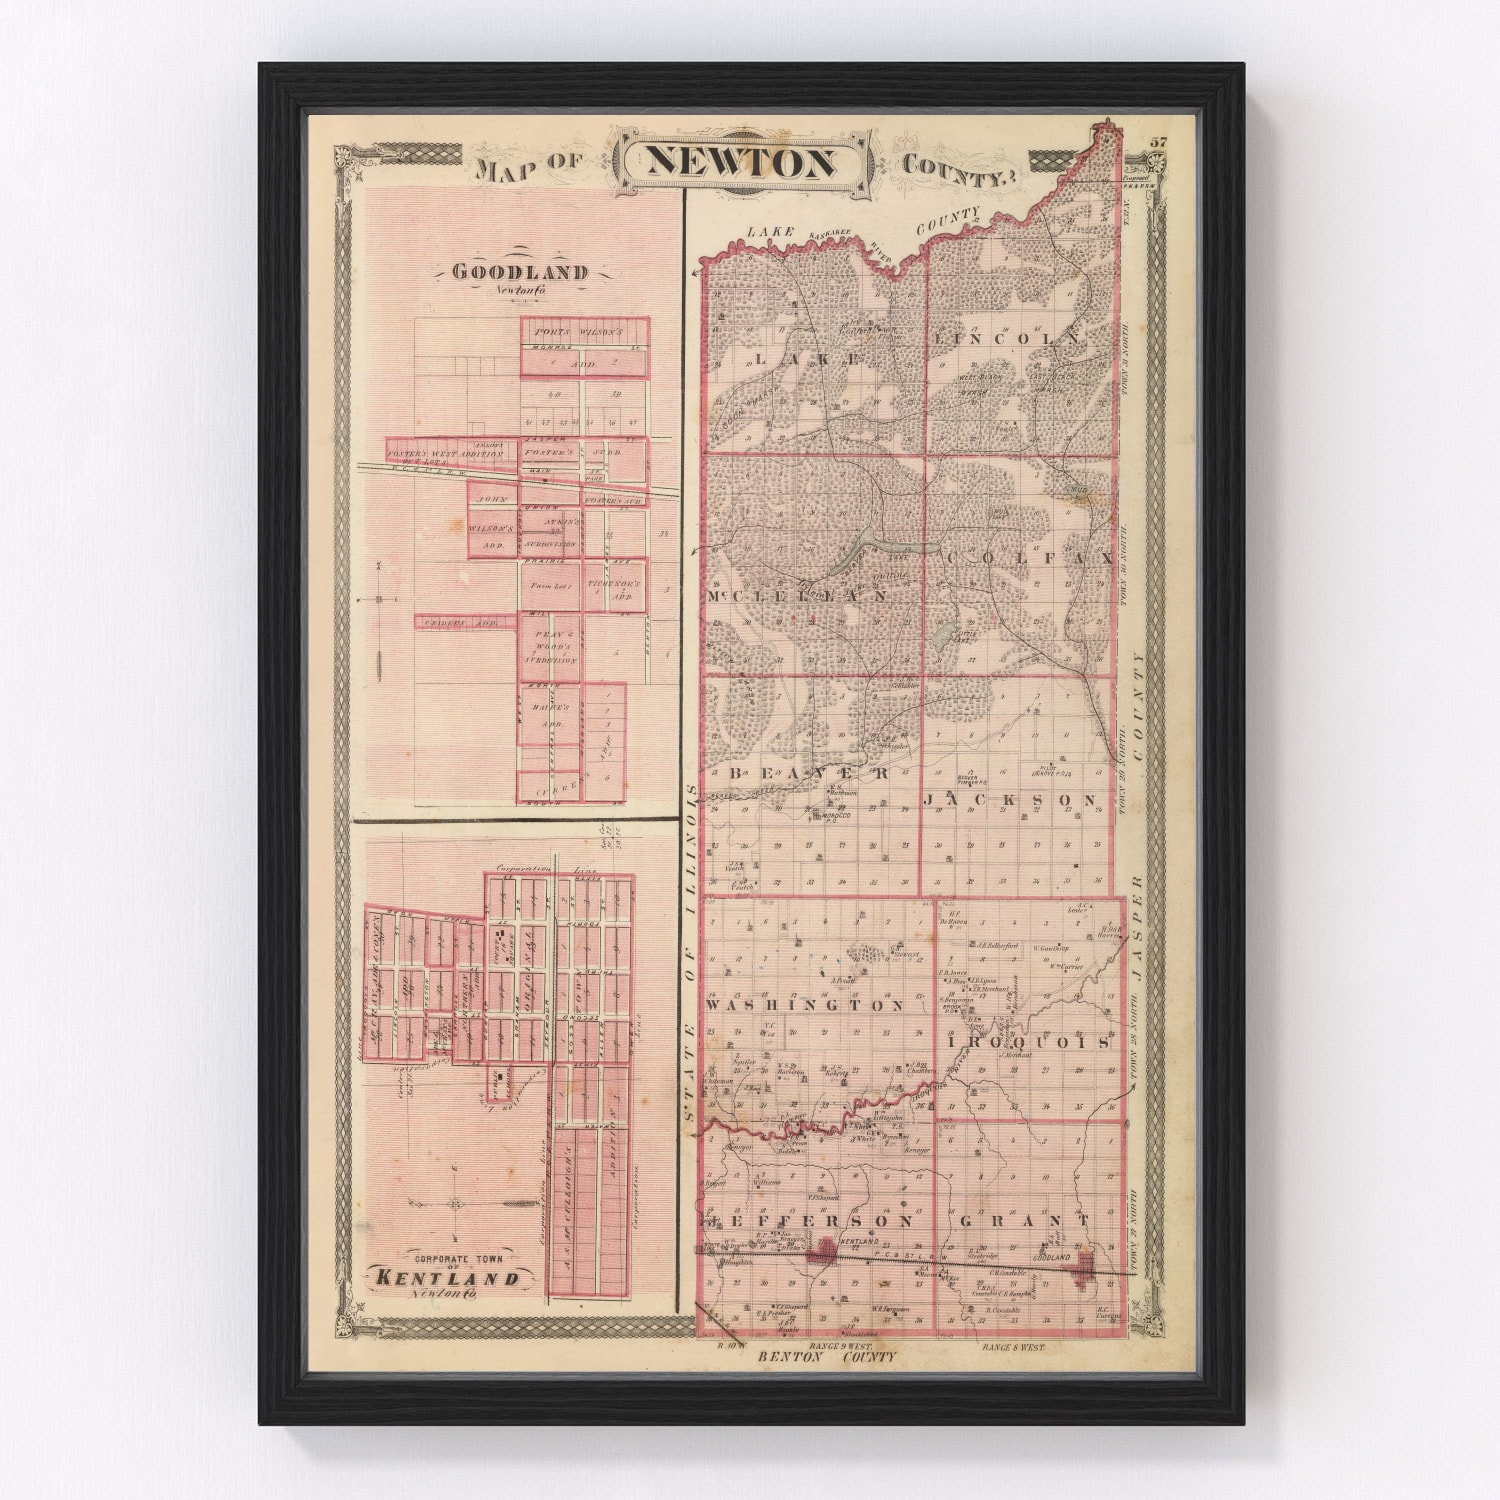 Vintage Map of Newton County Indiana, 1876